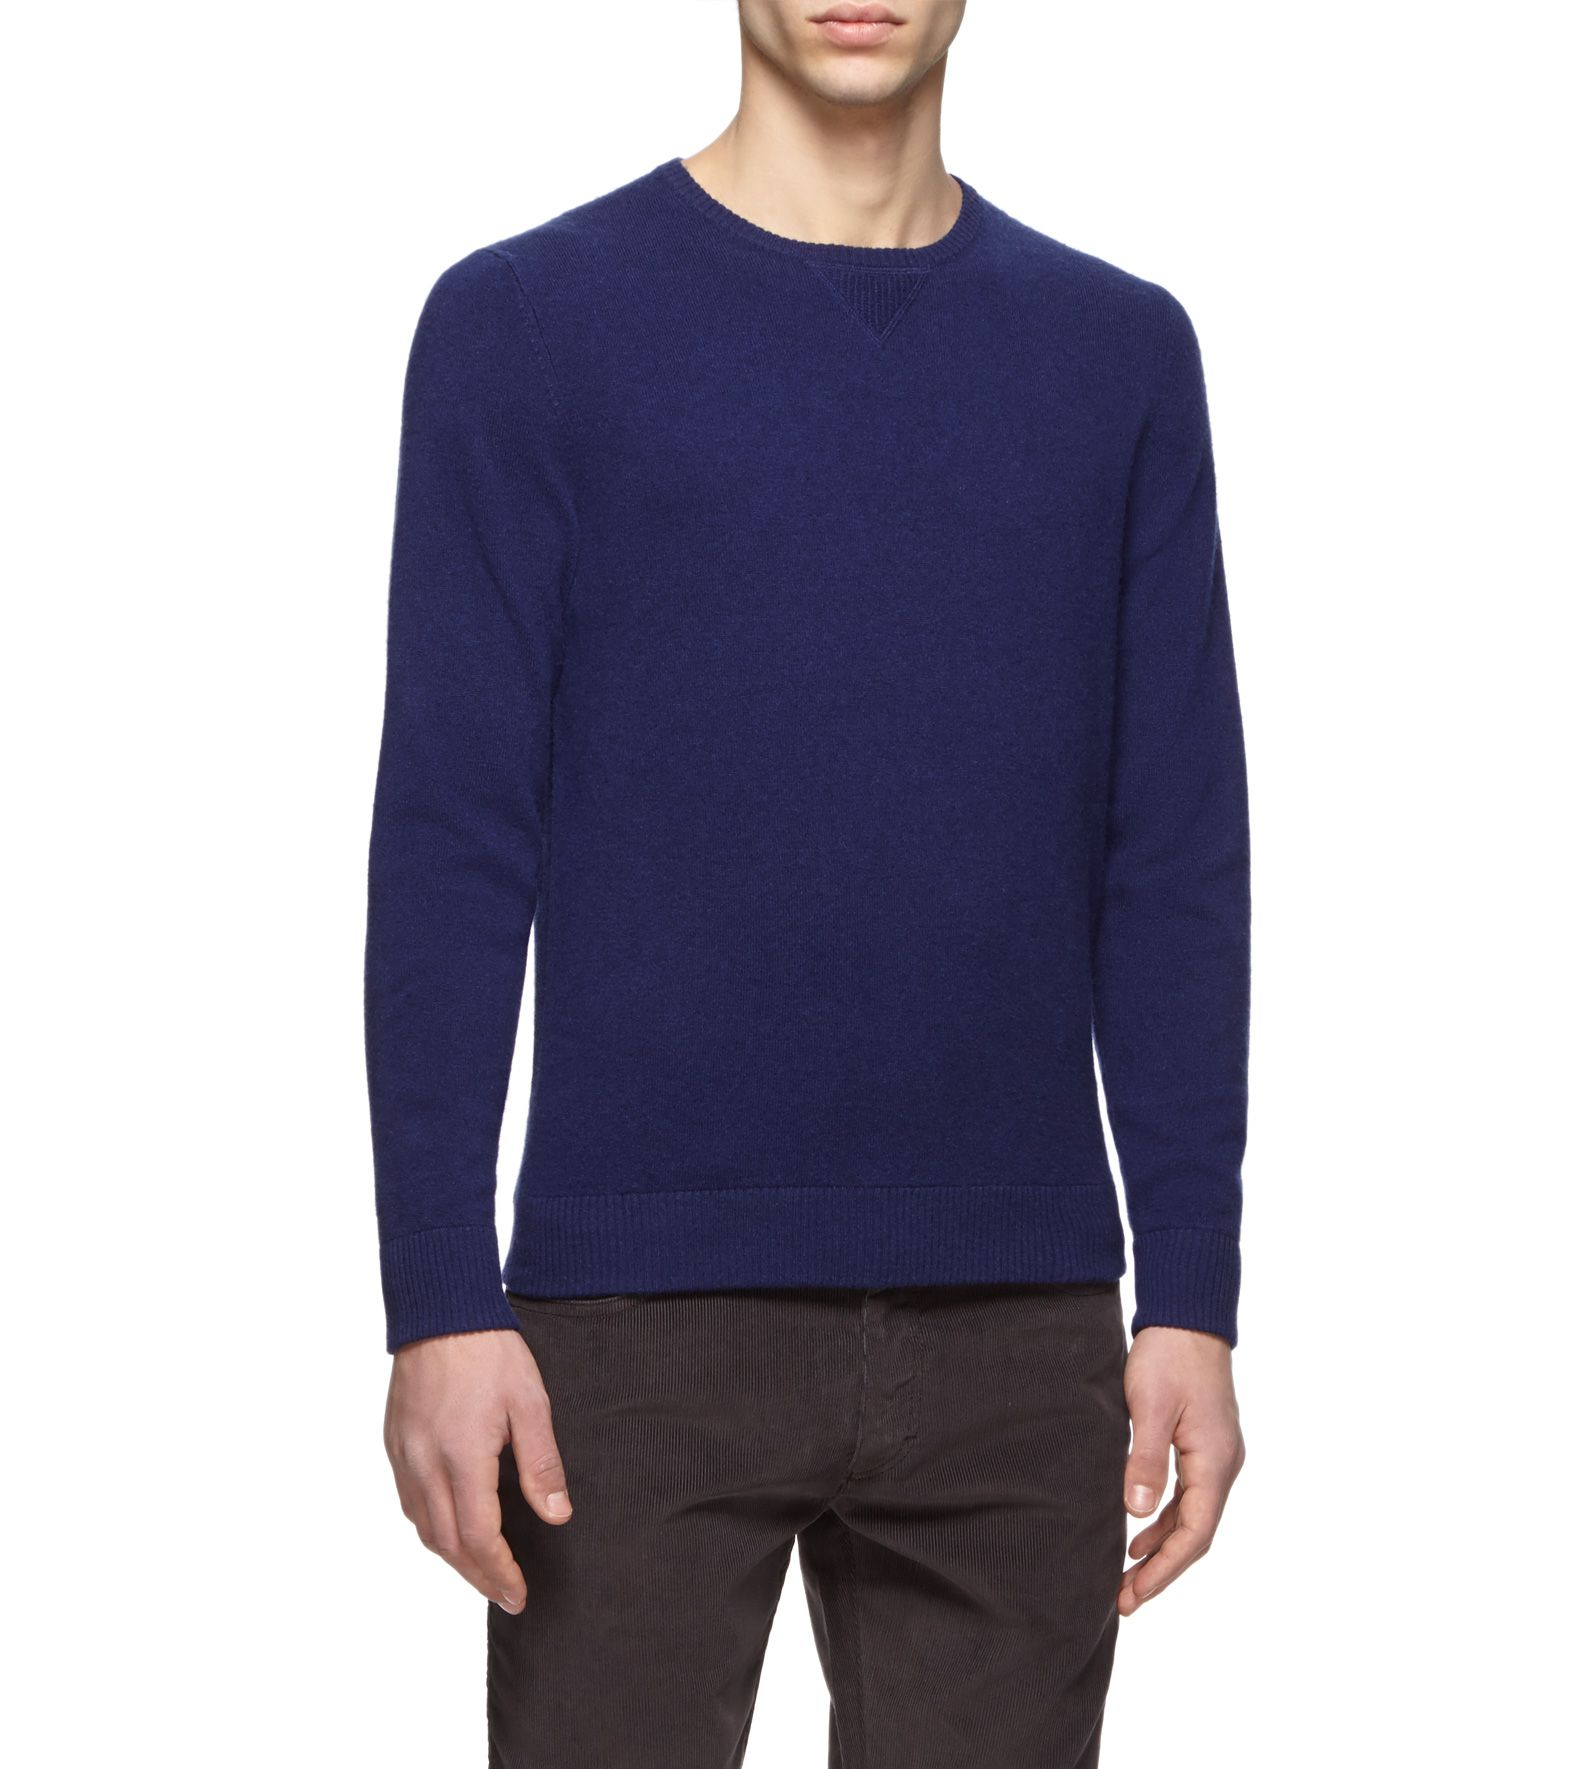 Shop online for Men's Designer Sweaters, Cashmere & Cardigans with Free Shipping and Free Returns. Bloomingdale's like no other store in the world.